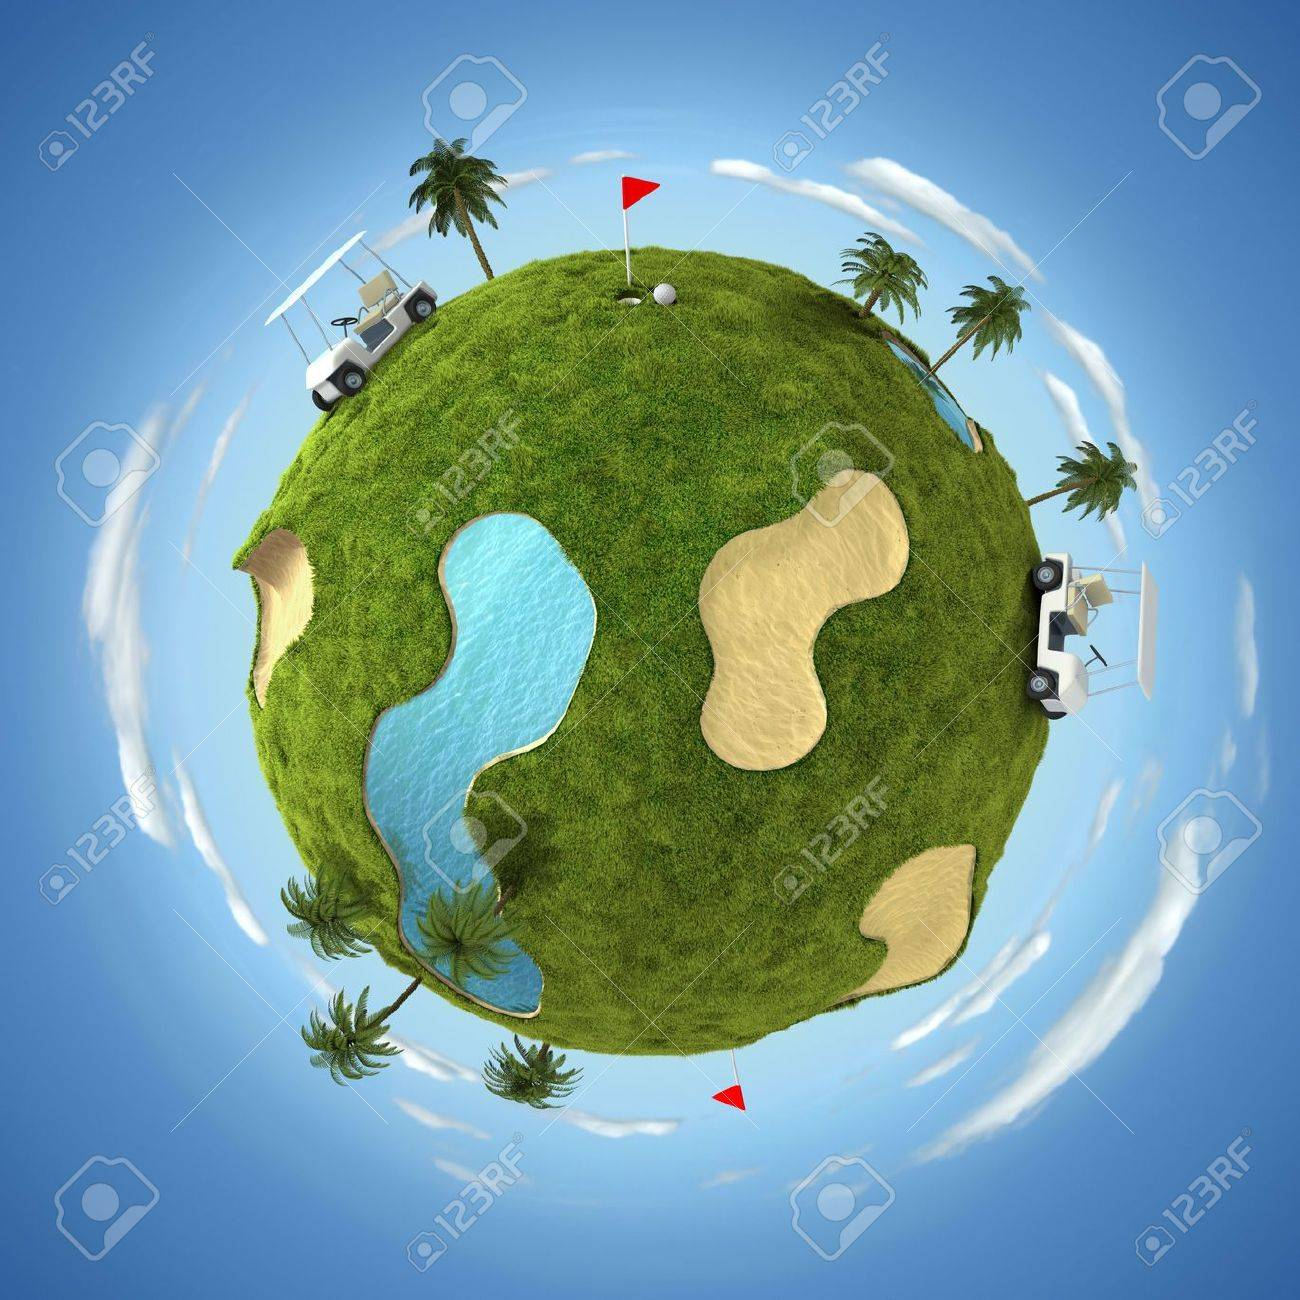 World of golf Stock Photo - 6567235